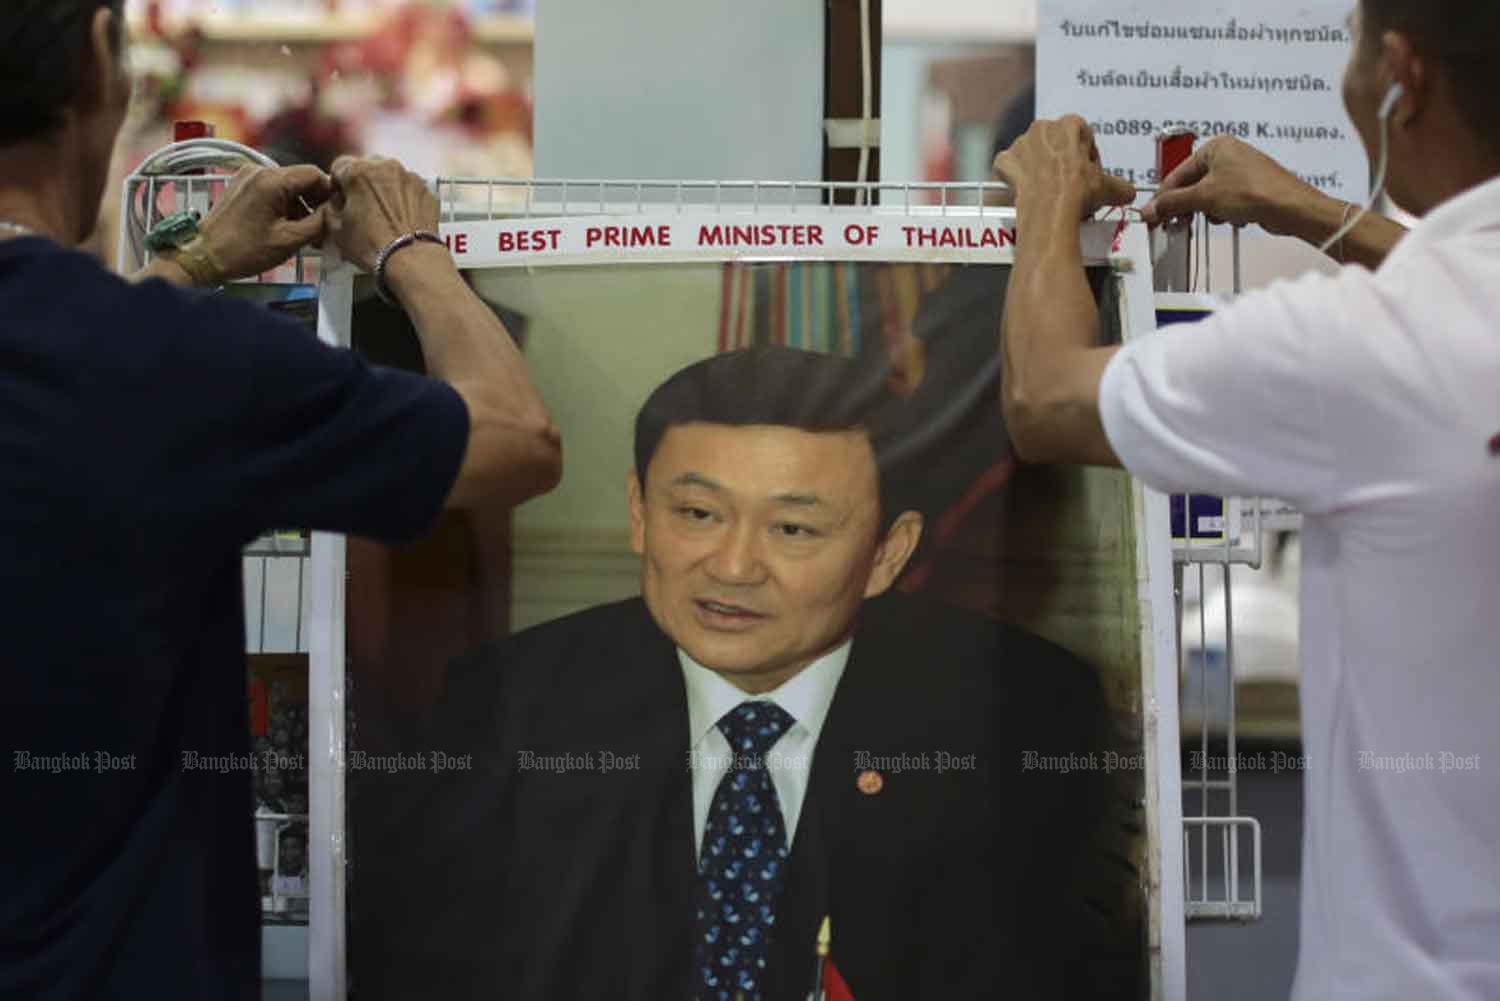 Red-shirt United Front for Democracy against Dictatorship supporters hold a birthday party for ousted prime minister Thaksin Shinawtra at a bookshop at Imperial World shopping mall in Lat Phrao, Bangkok, in July 2016. (Bangkok Post file photo)